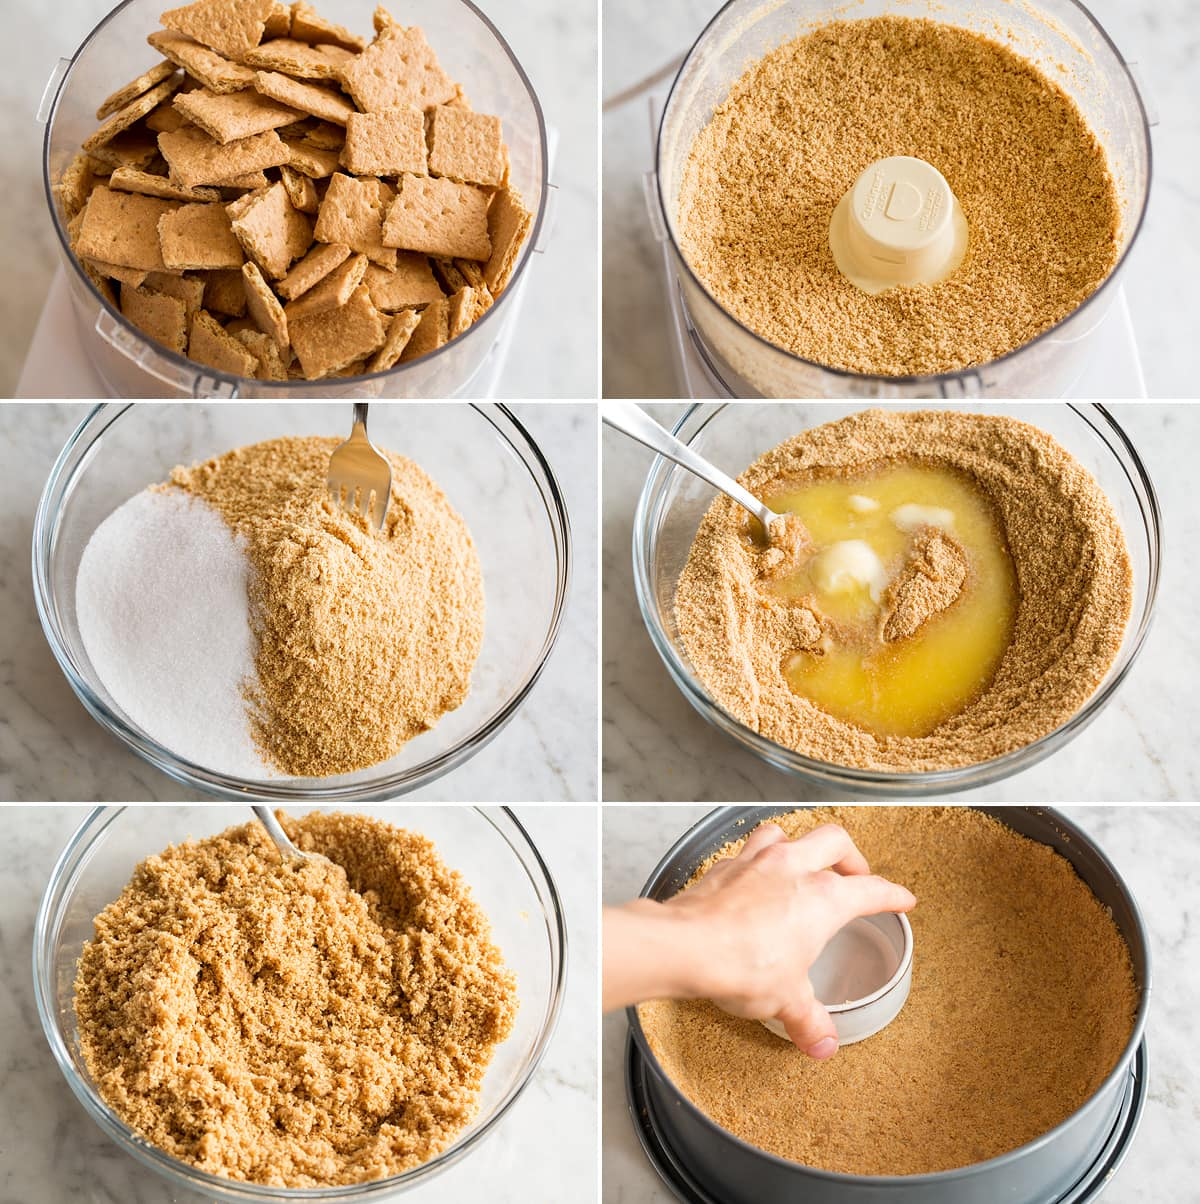 Collage of six images showing steps to preparing a graham cracker crust for cheesecake.